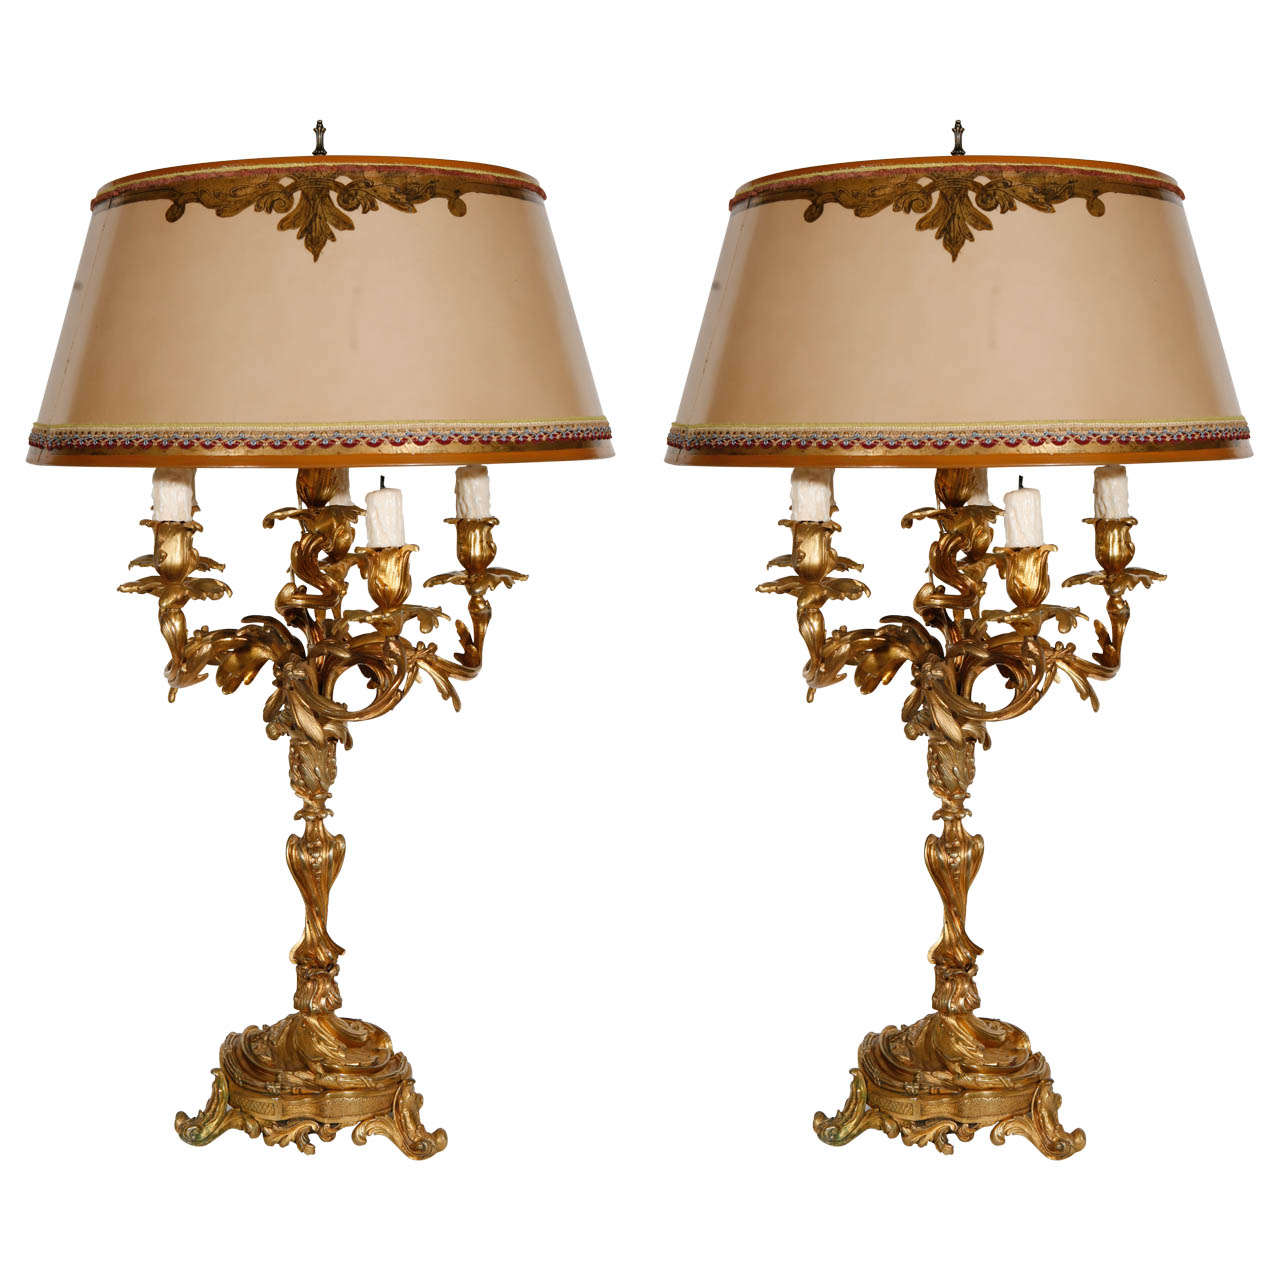 Pair Of 19th Century French Dore Bronze Candelabra Lamps